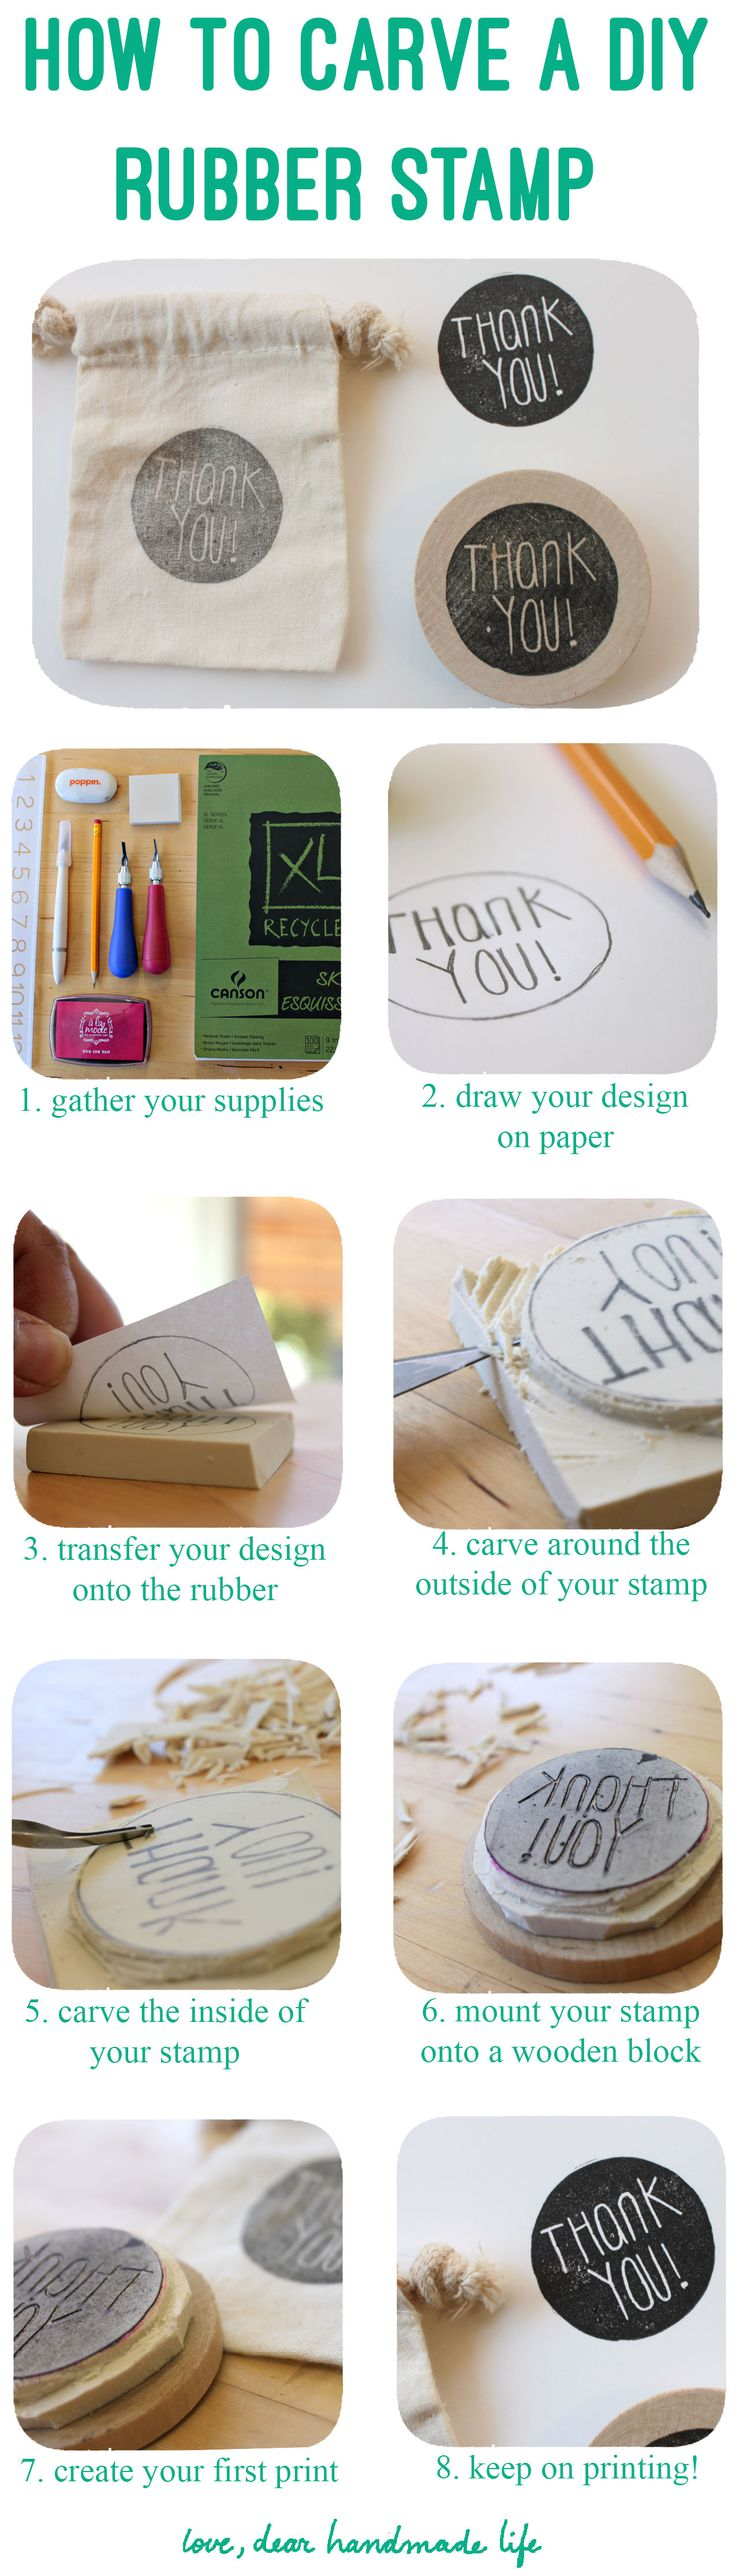 how to carve rubber stamp dear handmade life